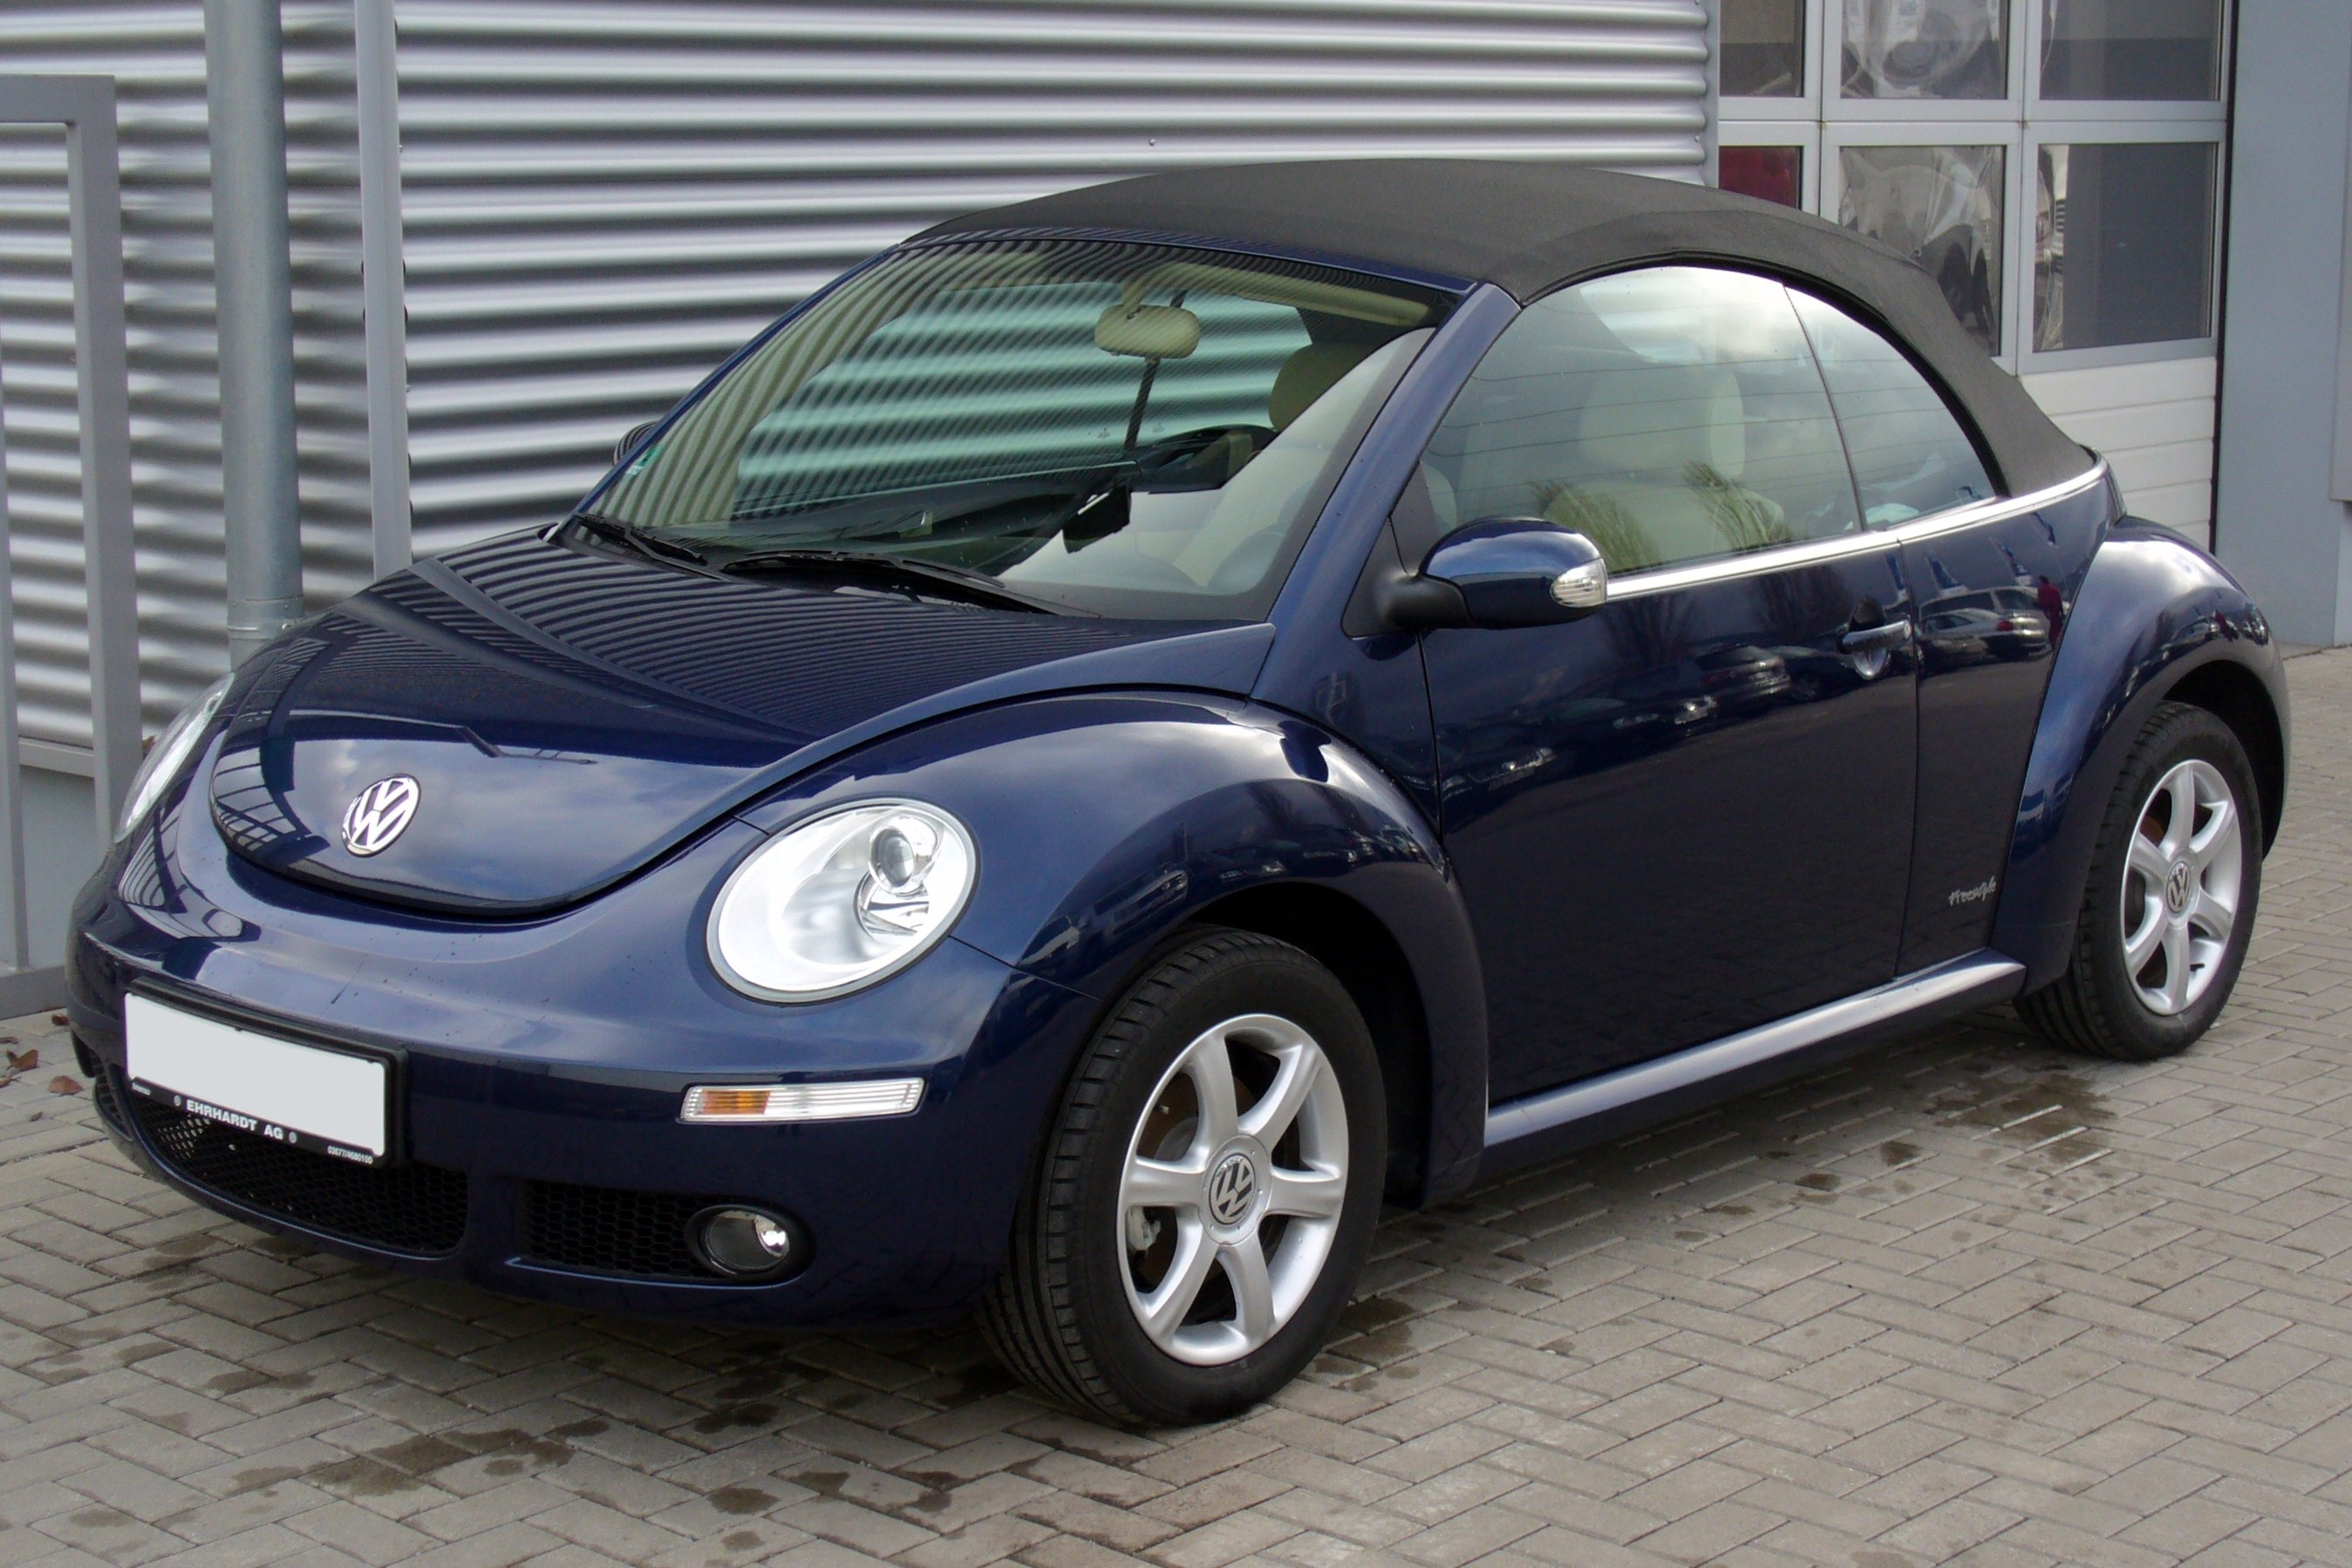 file vw new beetle cabrio 1 6 freestyle shadowblue jpg wikimedia commons. Black Bedroom Furniture Sets. Home Design Ideas